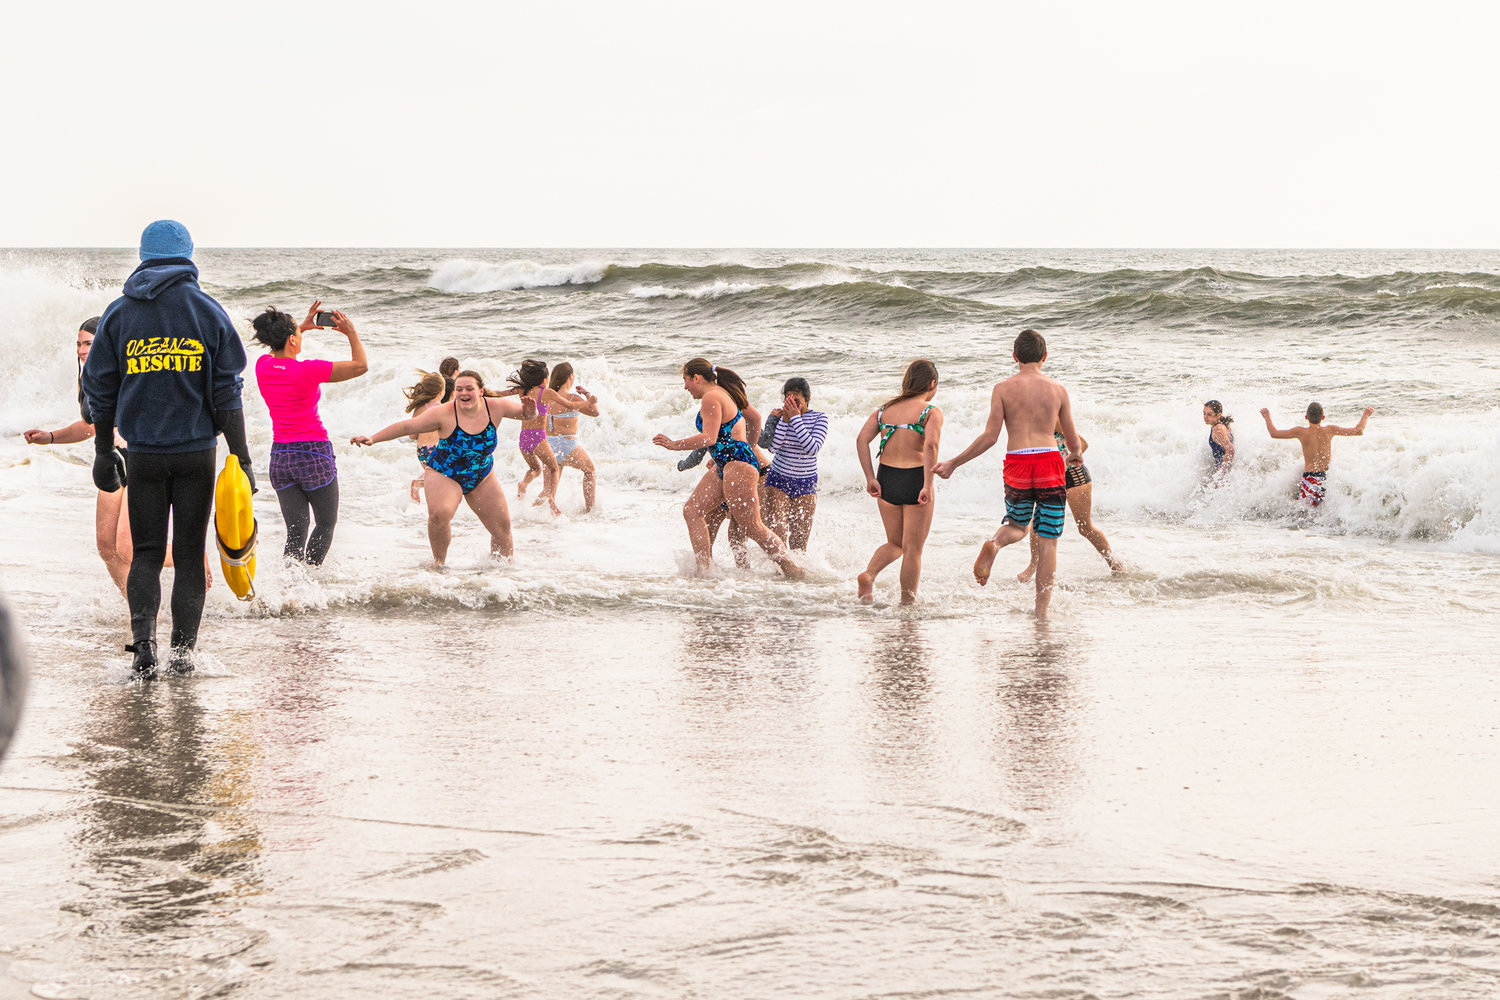 Brave swimmers ran into the water with friends and family recording the moments.